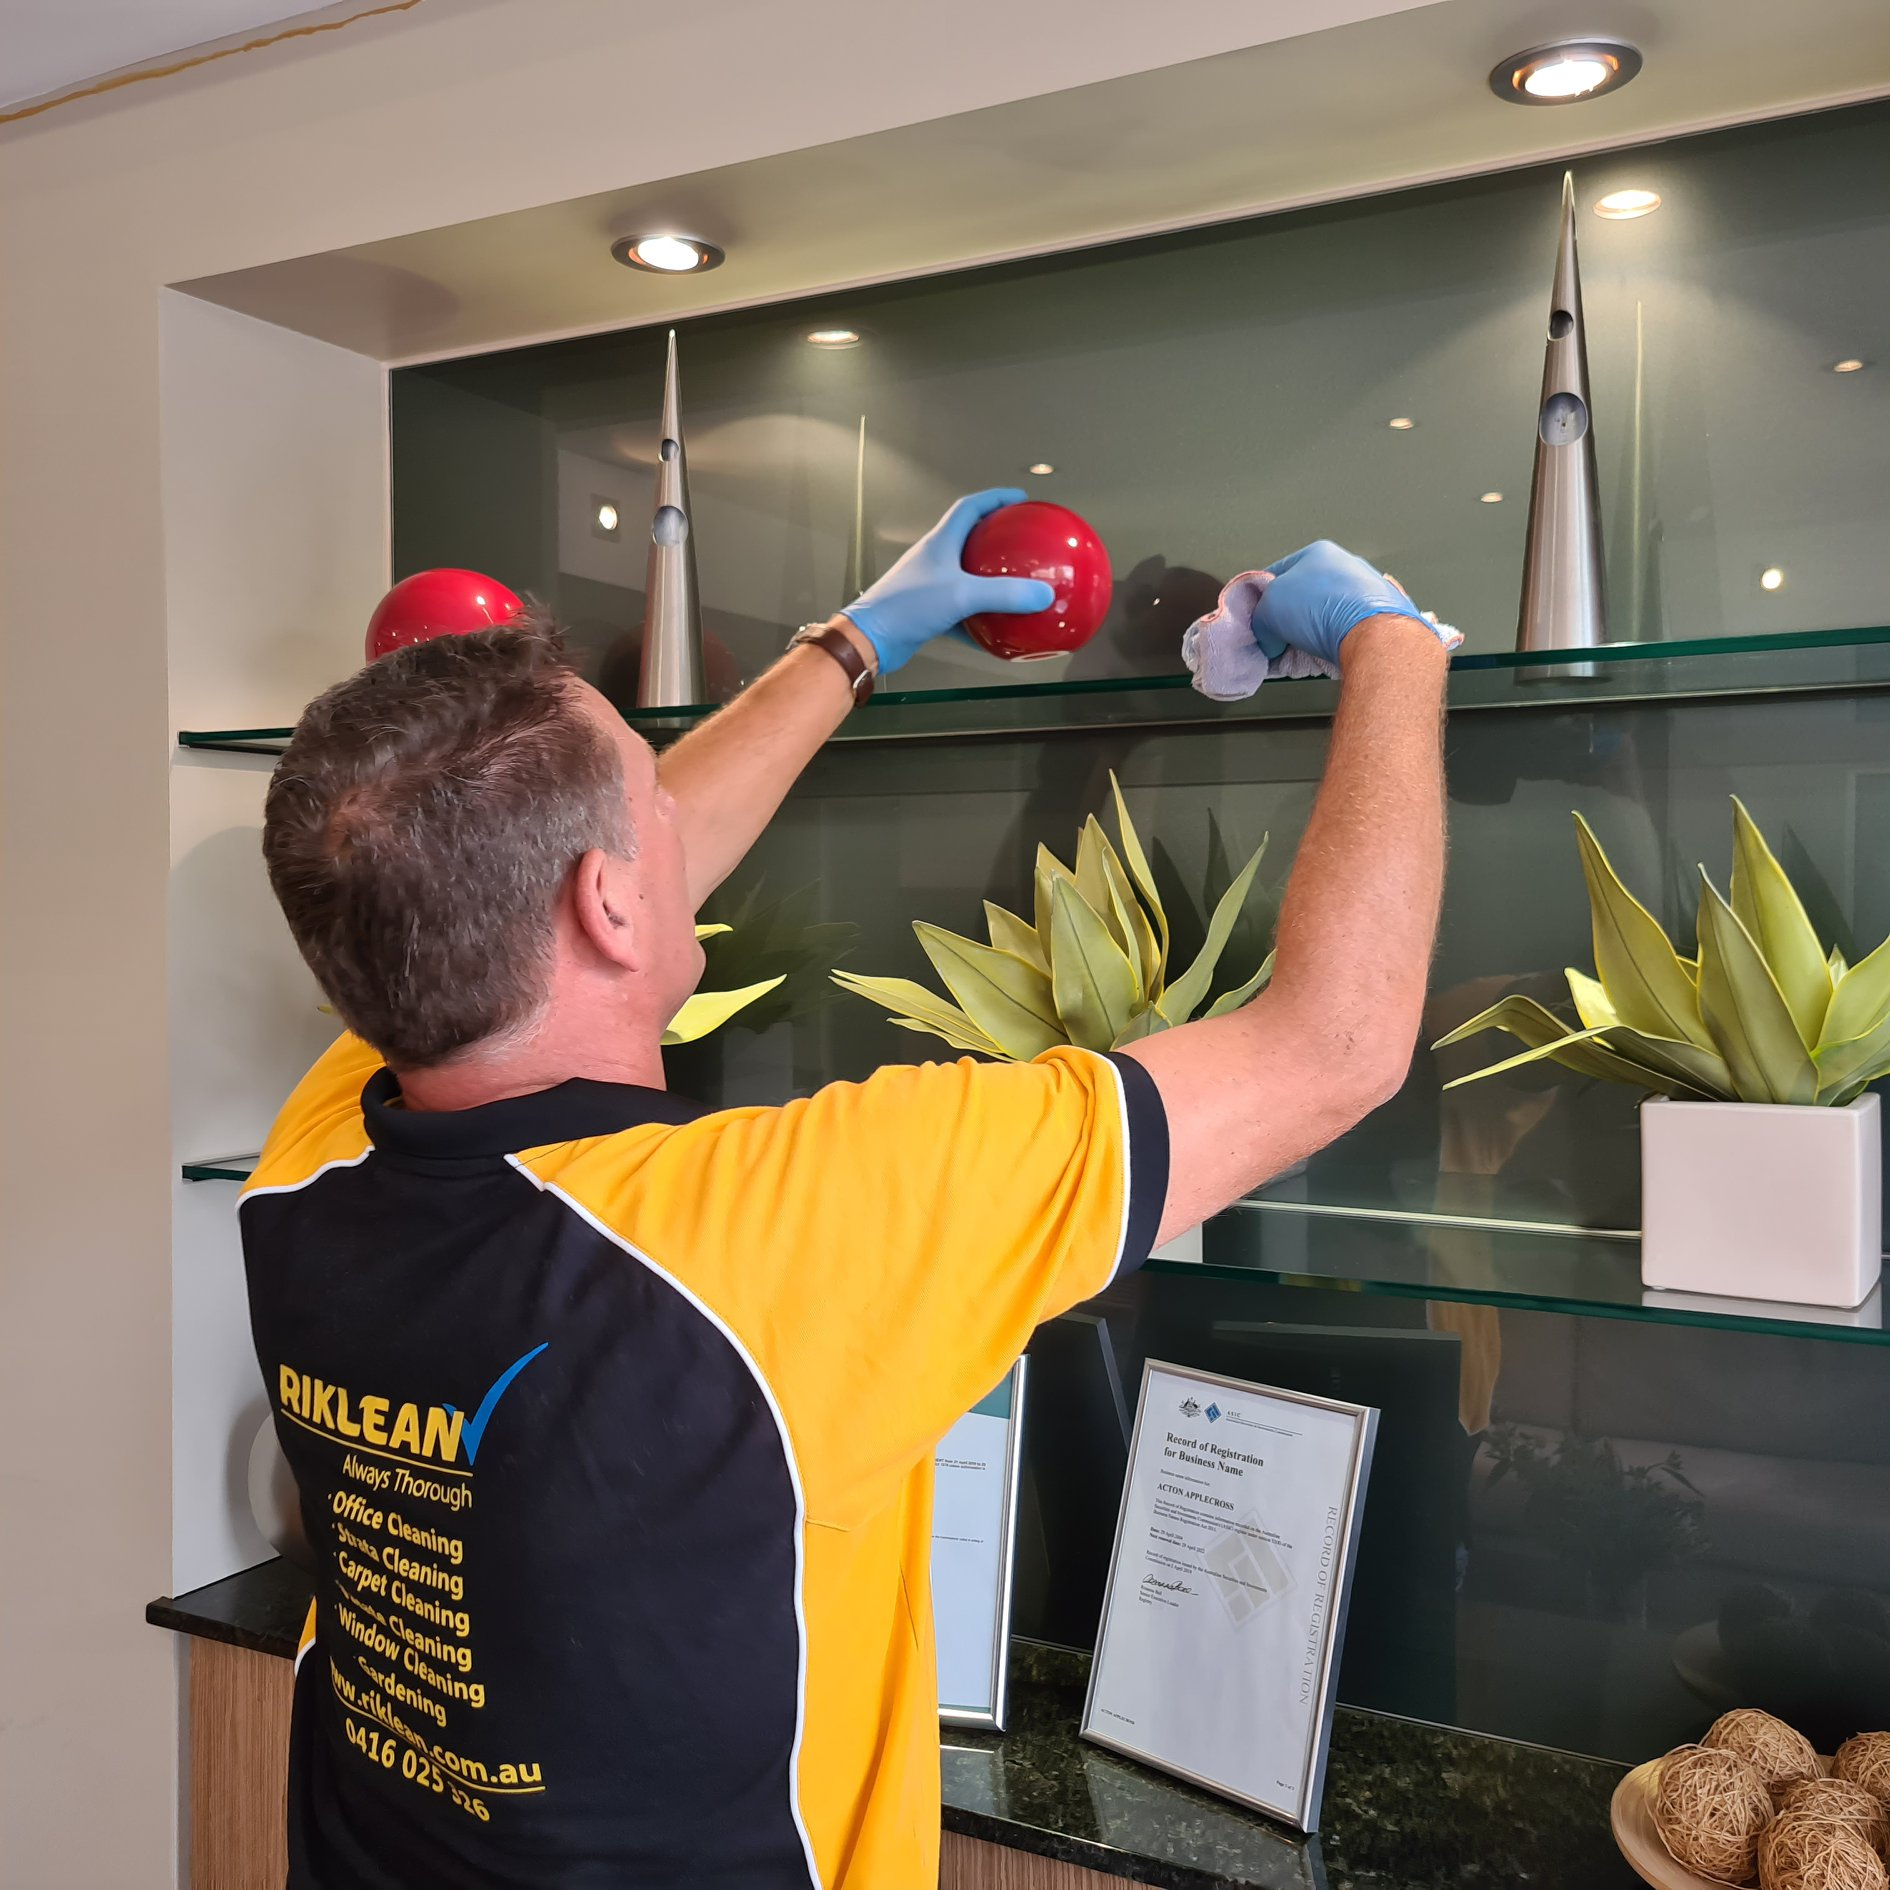 Riklean Perth Cleaning Services Van - Cleaning Services Perth